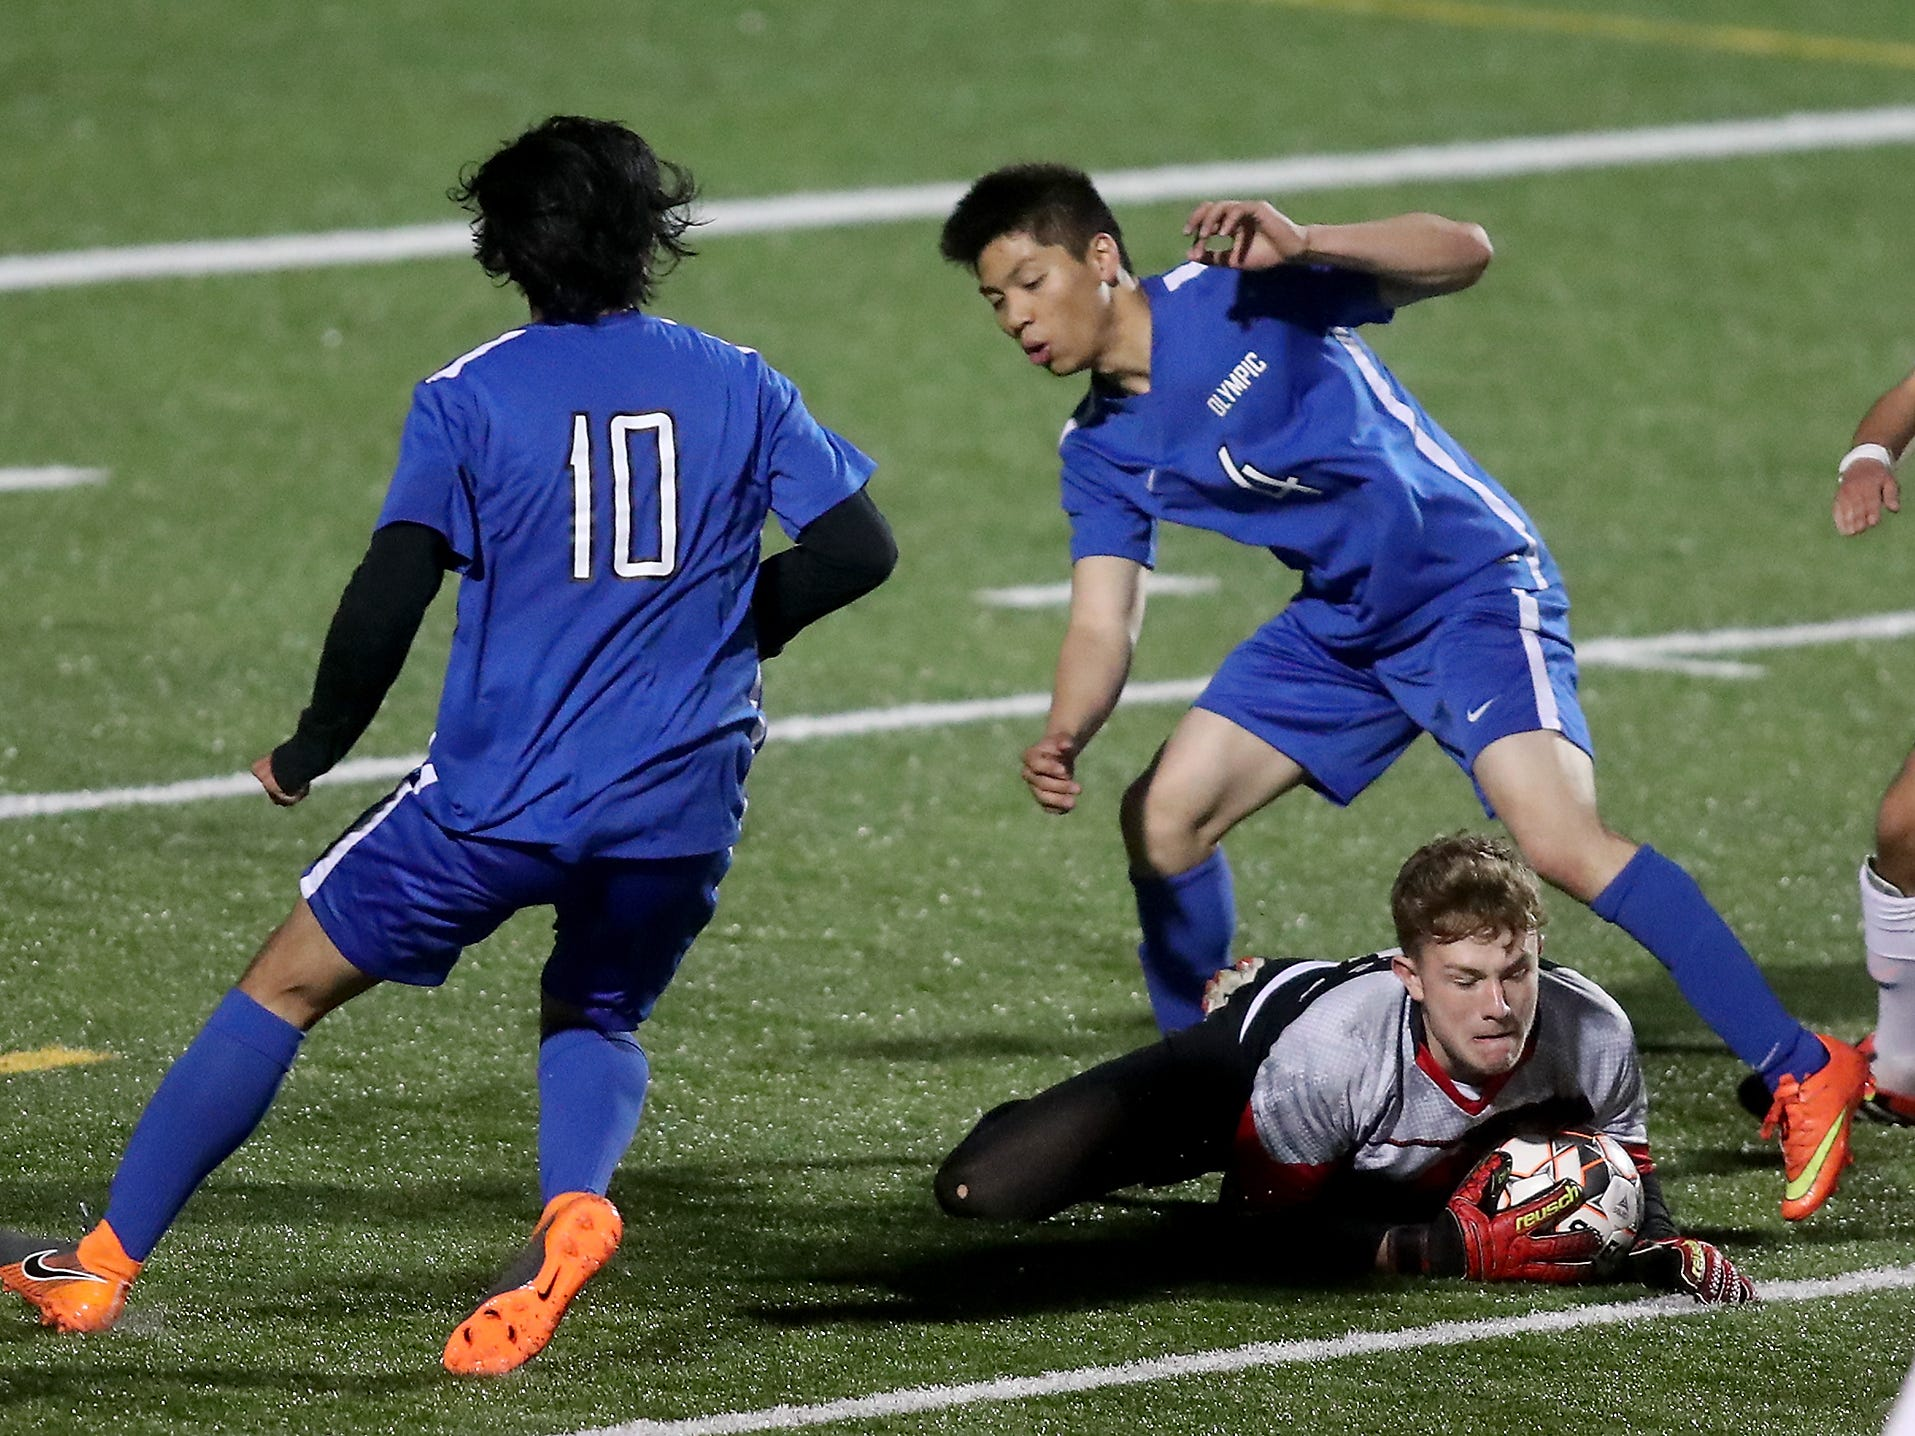 Port Townsend goalie Nico Winegar stops a shot by Olympic's Andrew Padilla (4) during the second half of their game at Silverdale Stadium on Friday, April 18, 2019.